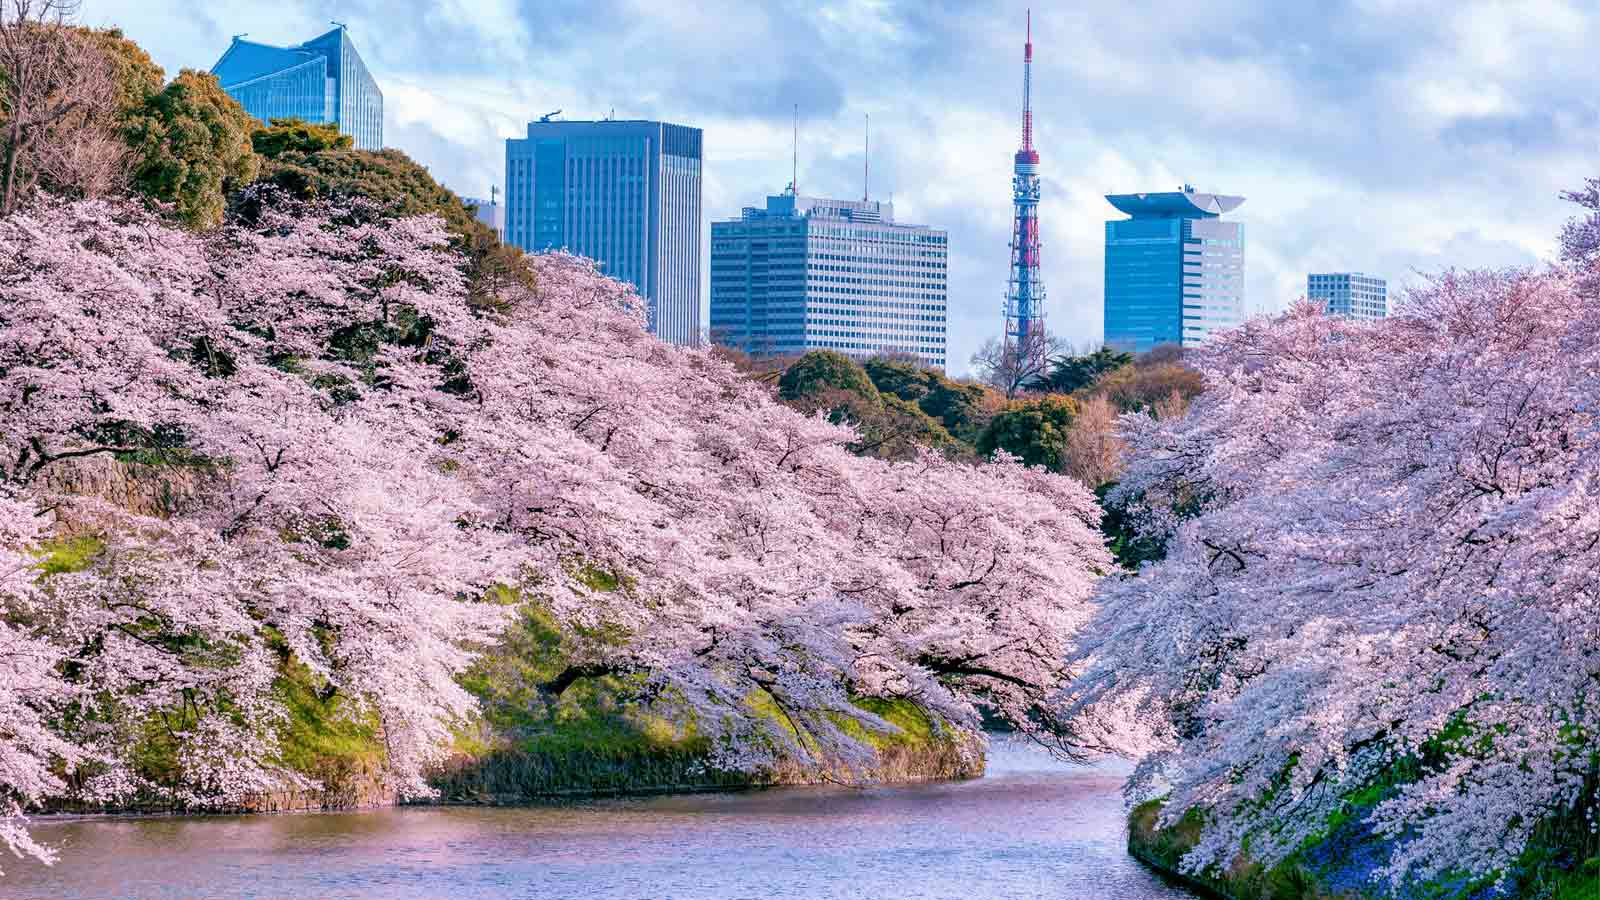 1600x900 Hd Wallpapers Cars 10 Places In Tokyo To See Cherry Blossoms This Spring